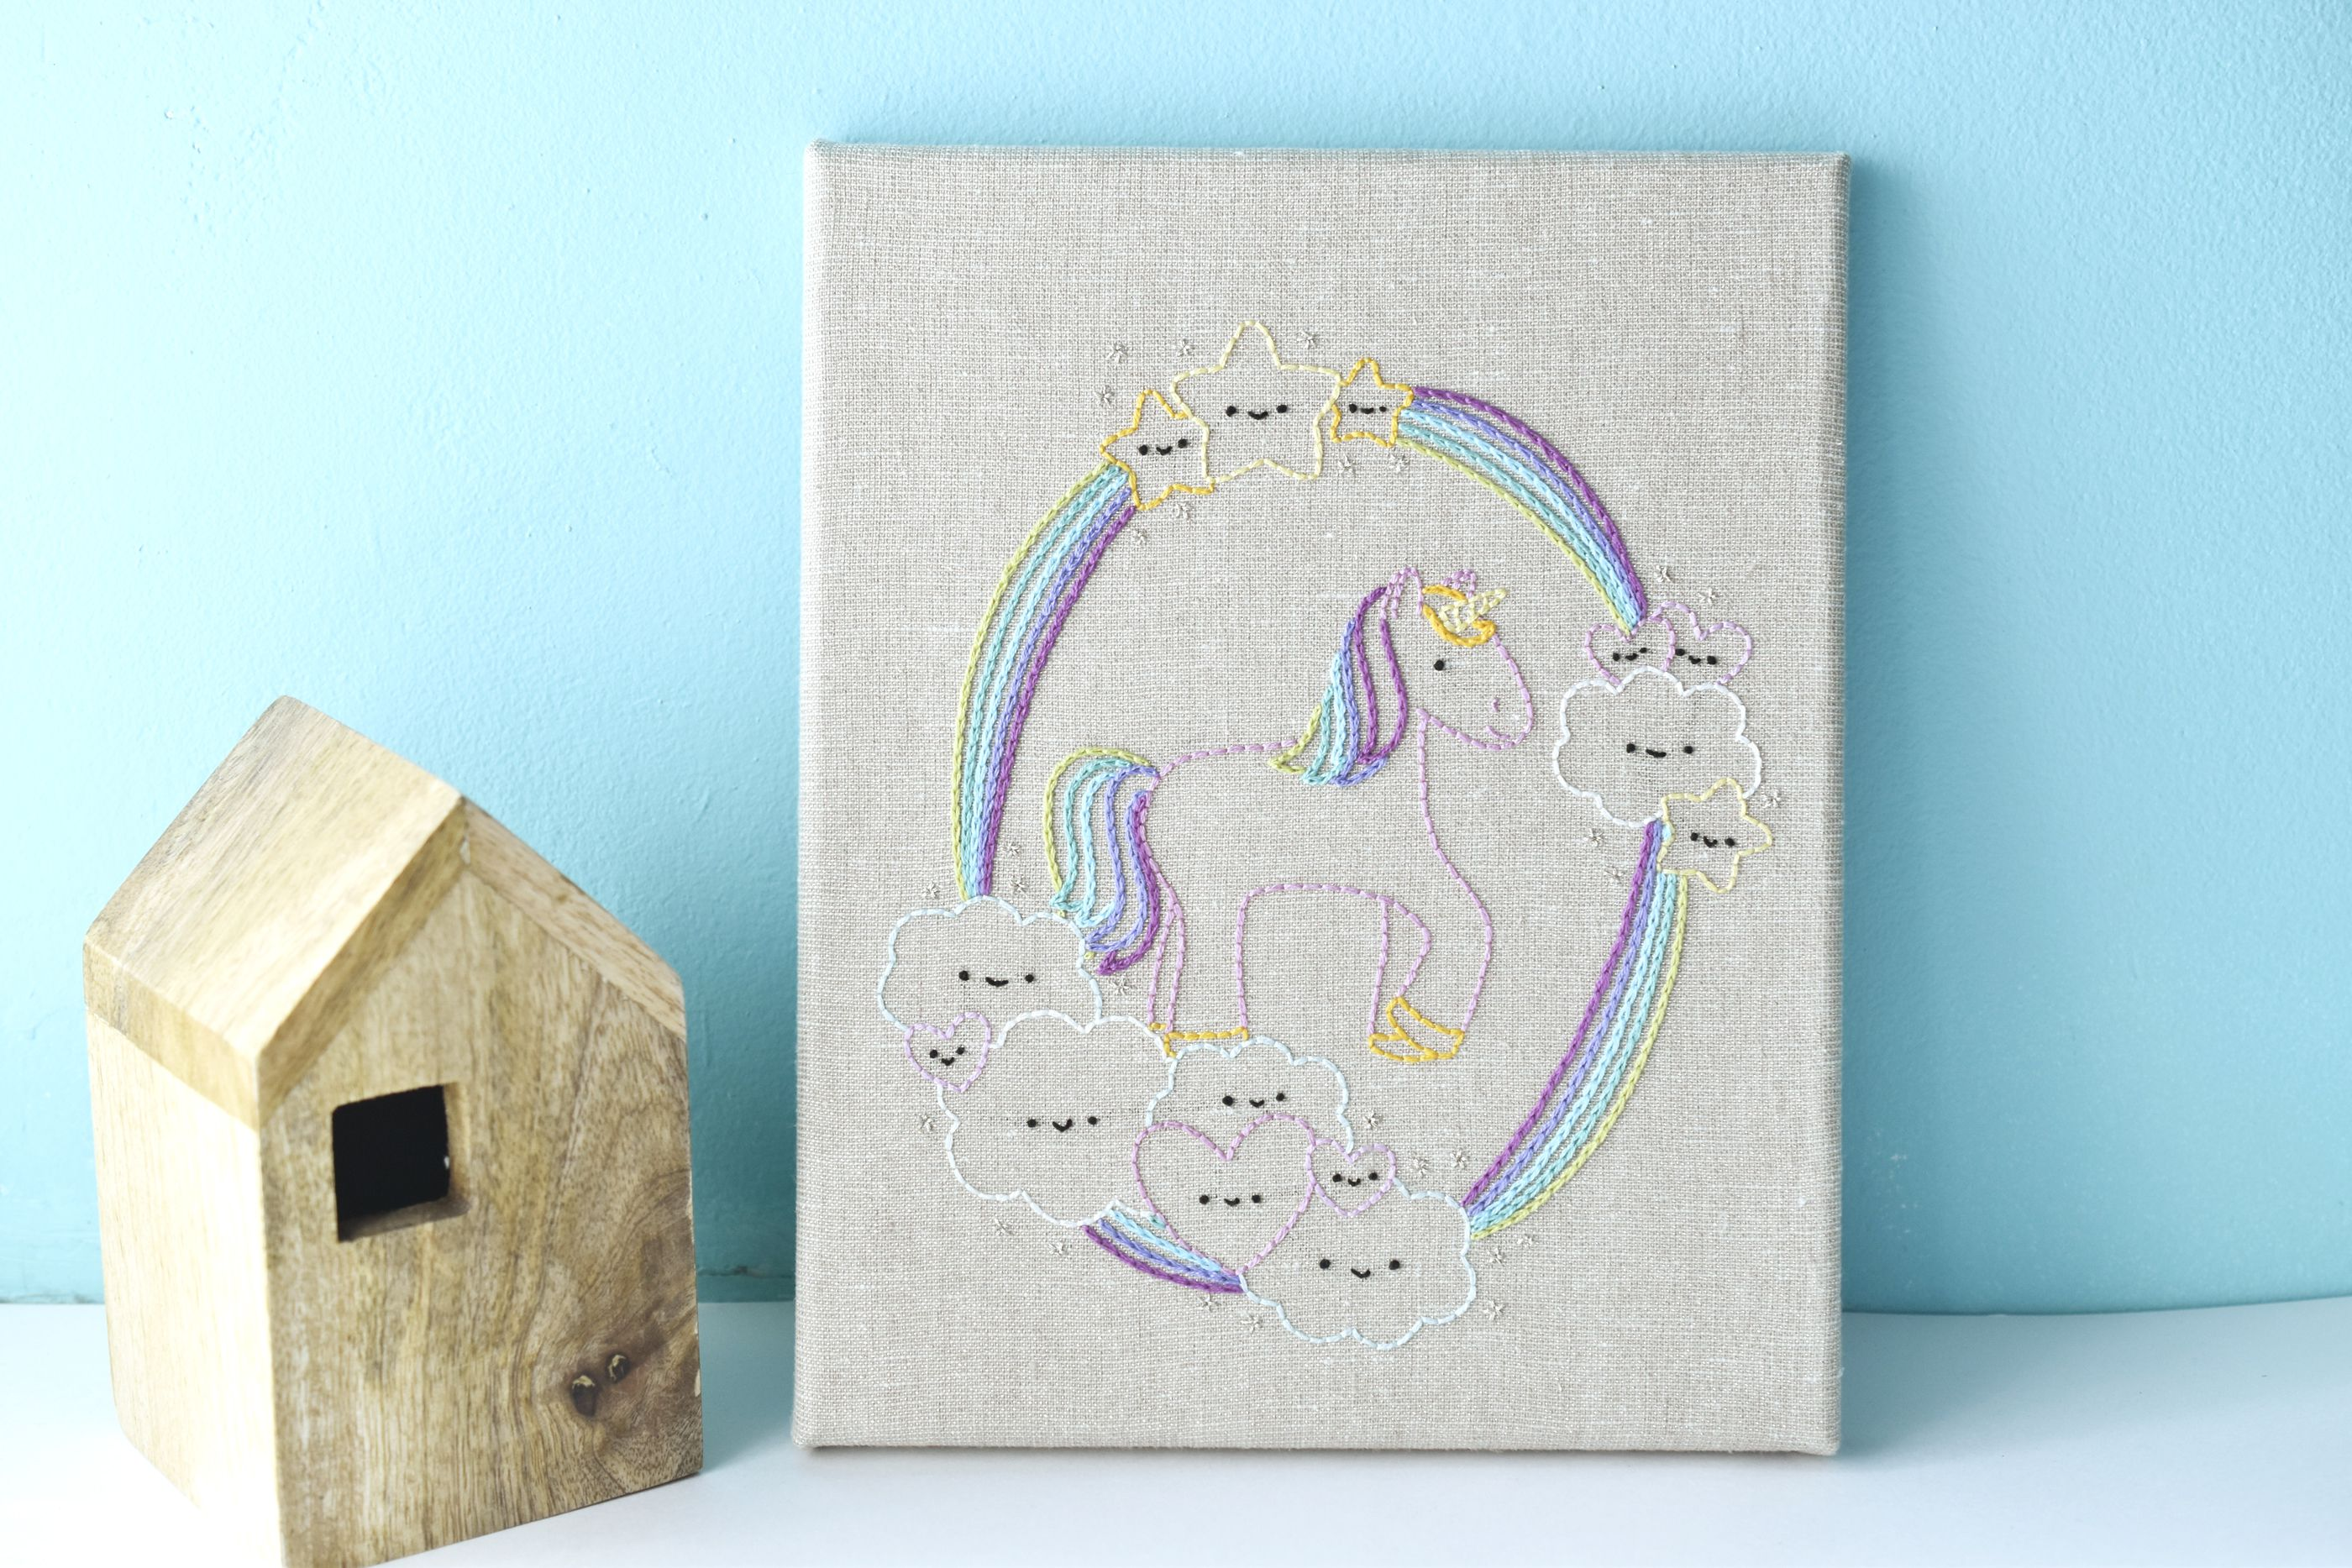 Display Your Finished Stretched Canvas Embroidery